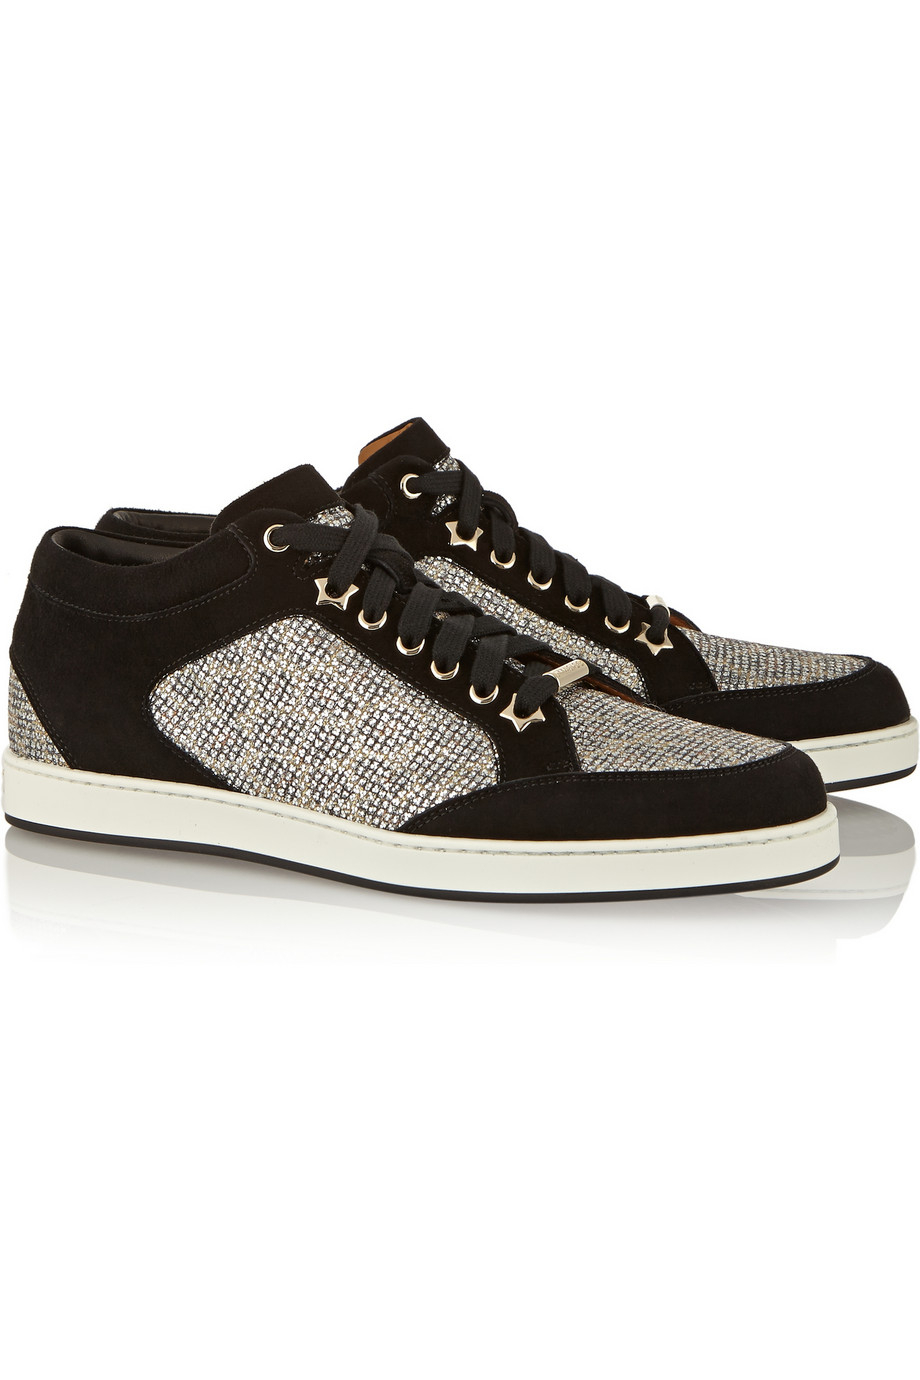 Jimmy choo Miami Lace-Paneled Suede Sneakers in Metallic ...